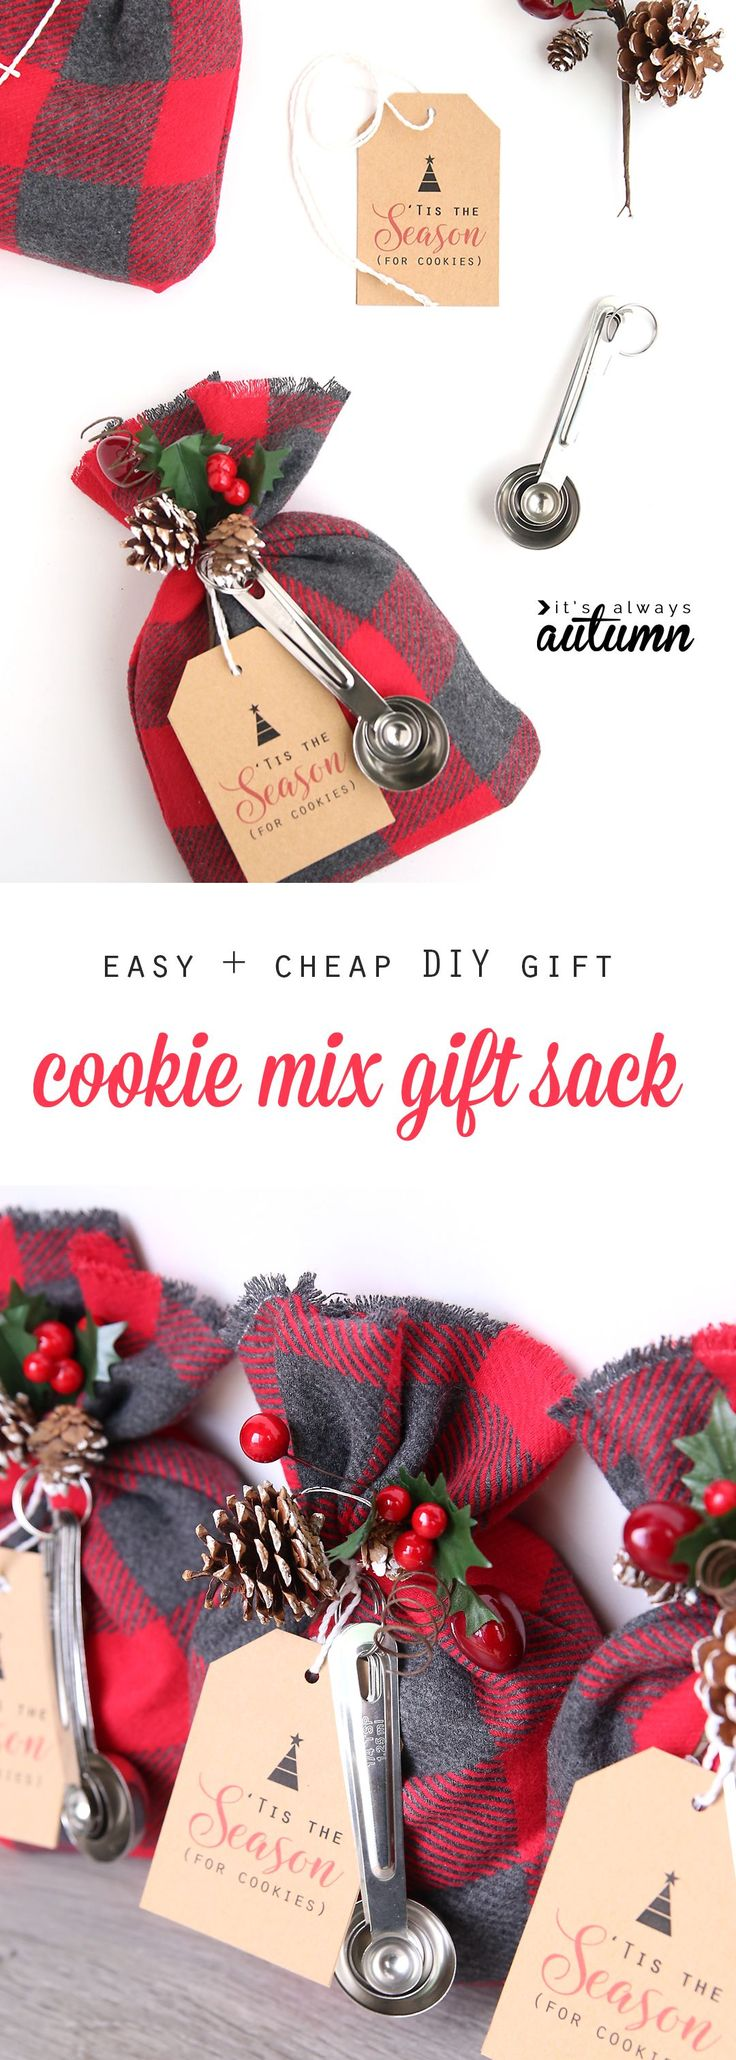 These cookie mix gift sacks make an adorable handmade Christmas gift, and they're easy and cheap to put together. DIY gift idea. More